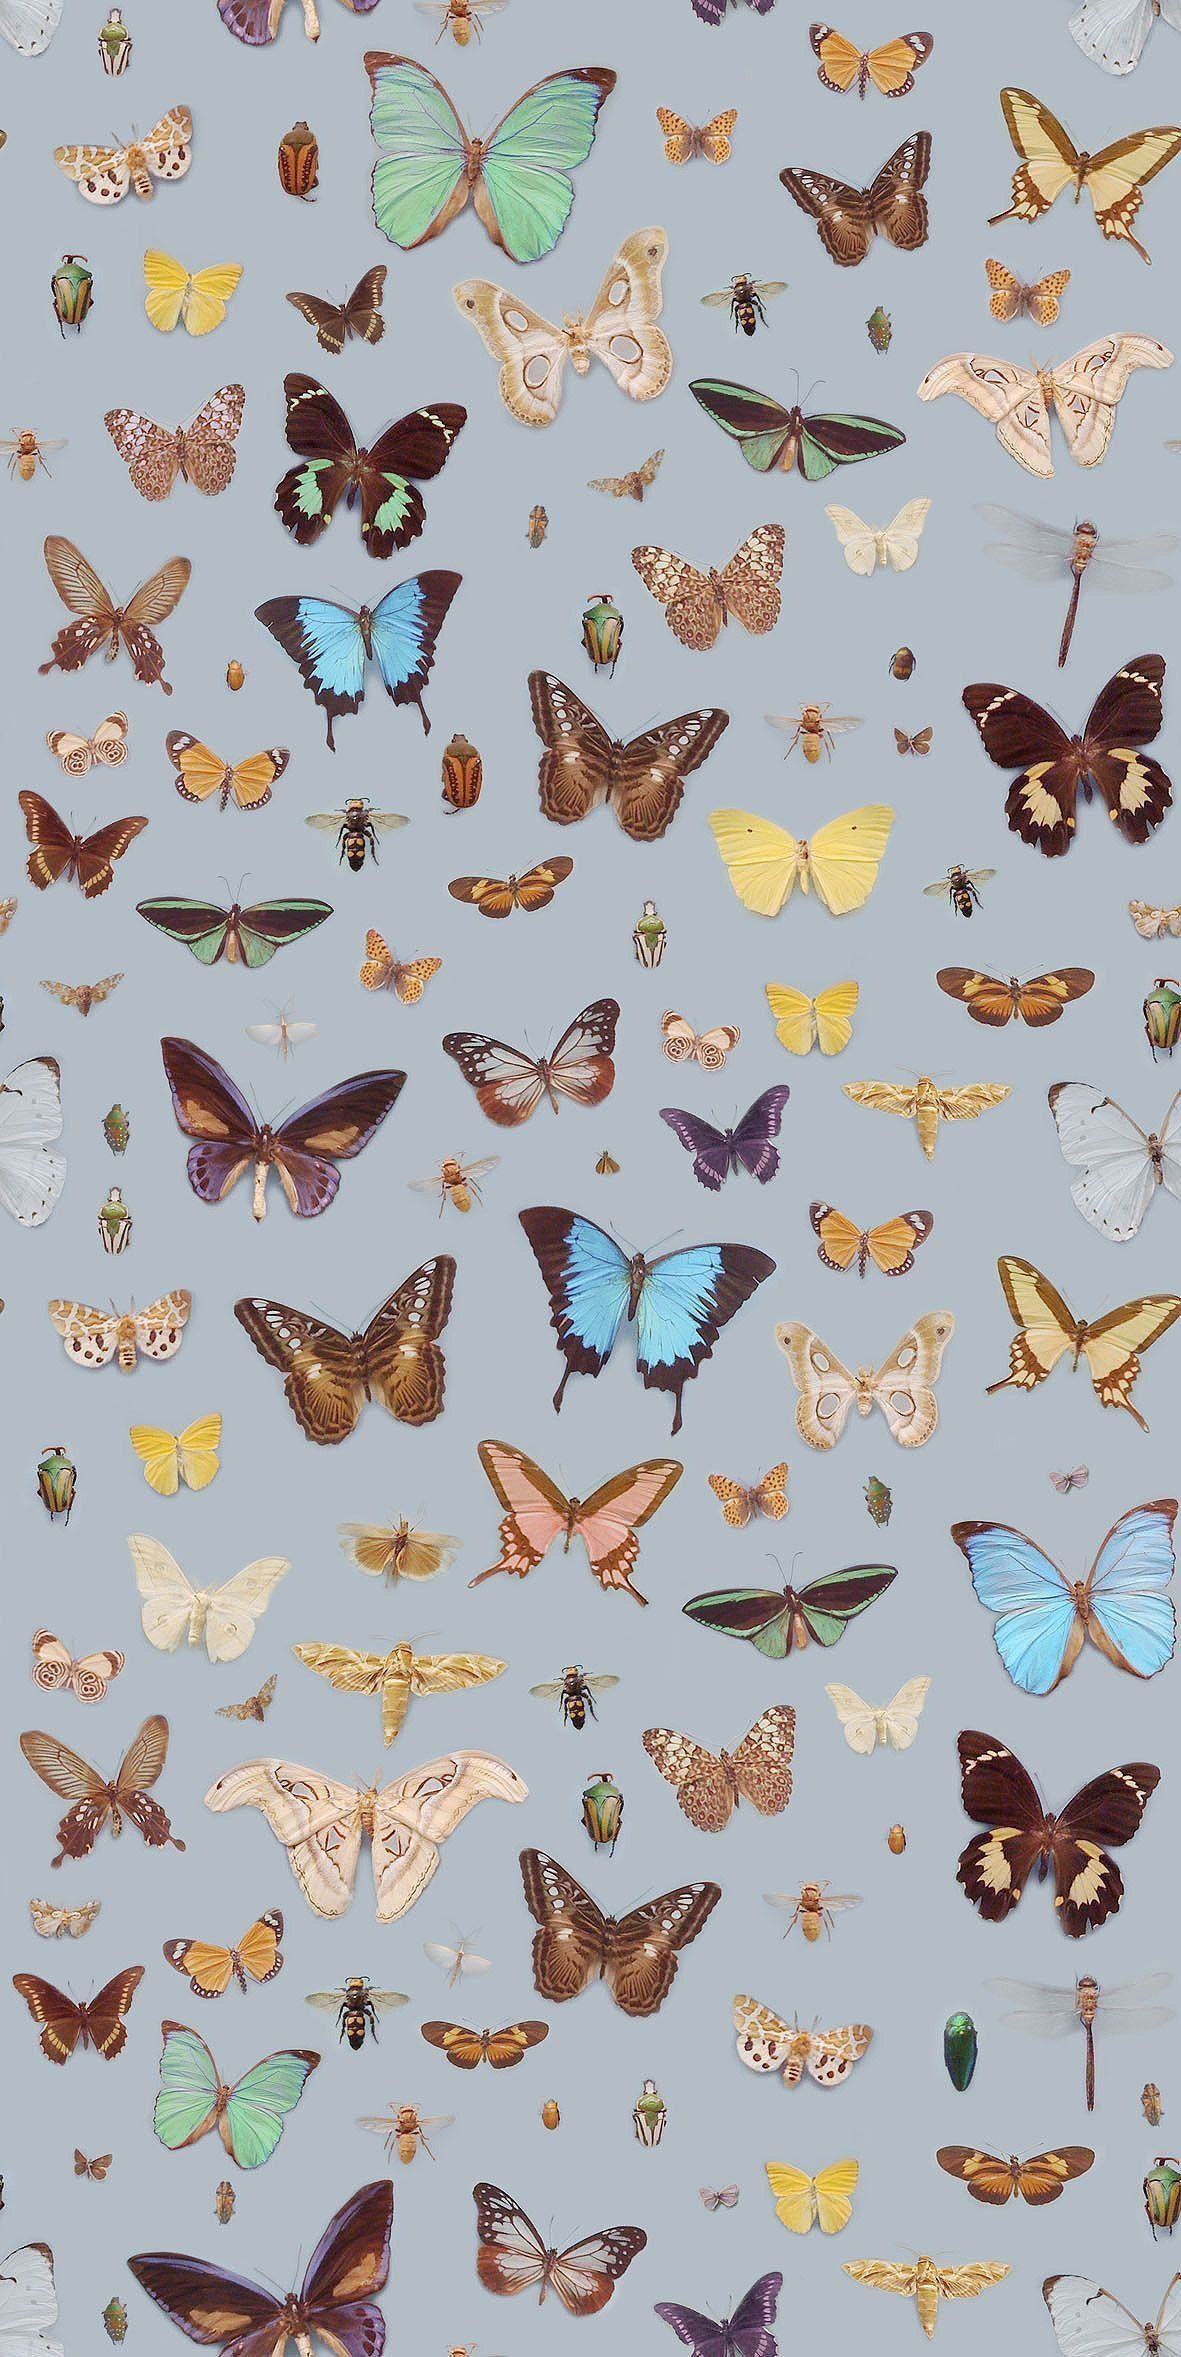 Butterfly Aesthetic Wallpapers Wallpaper Cave